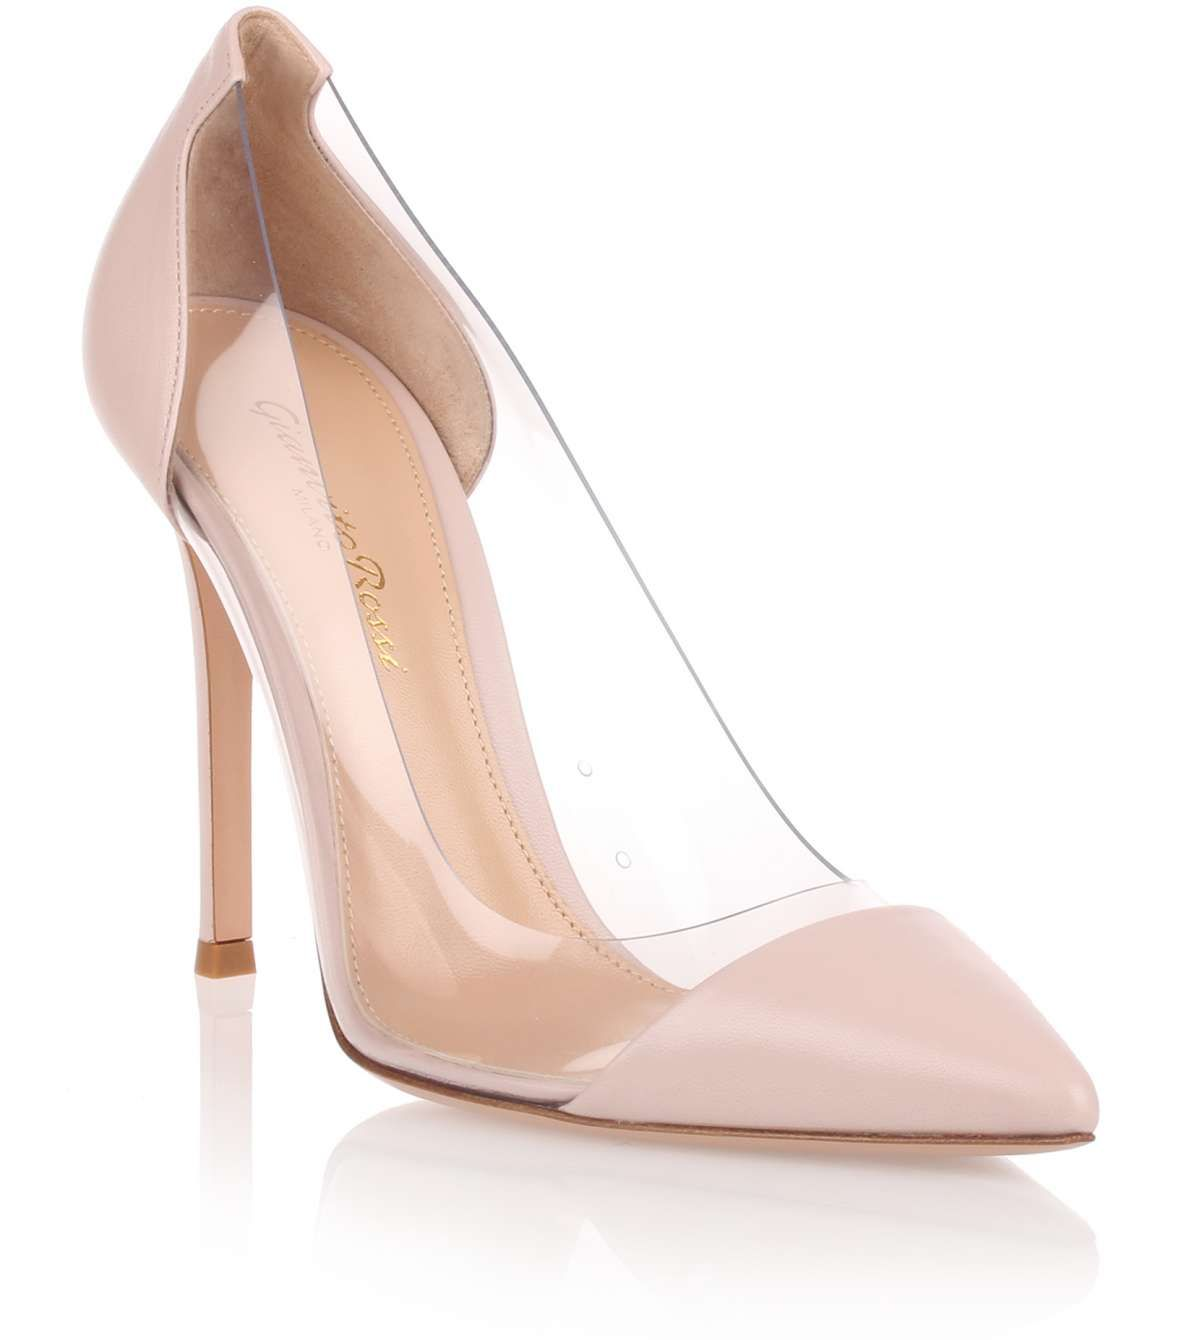 Pink Nappa Leather Pump With Transparent Sides From Gianvito Rossi The Signature Plexi Pump Transparent Heels Shoes Pumps Heels Stilettos Pink High Heel Shoes